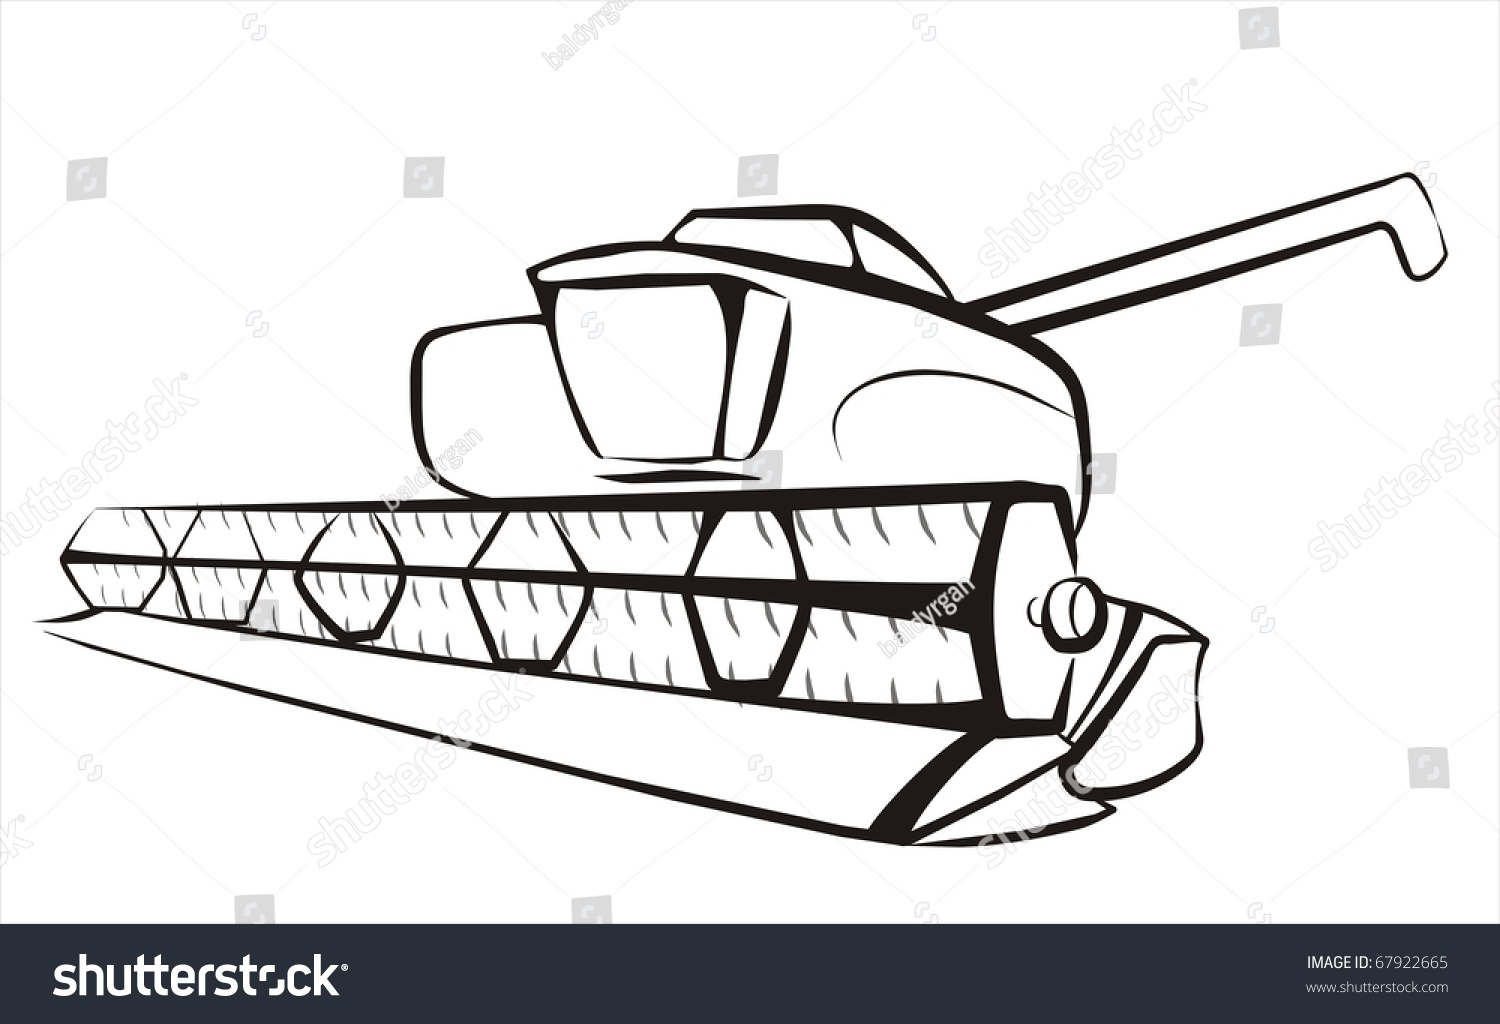 Combine Harvester Isolated Sketch Black Lines Stock Vector 67922665 Shutterstock